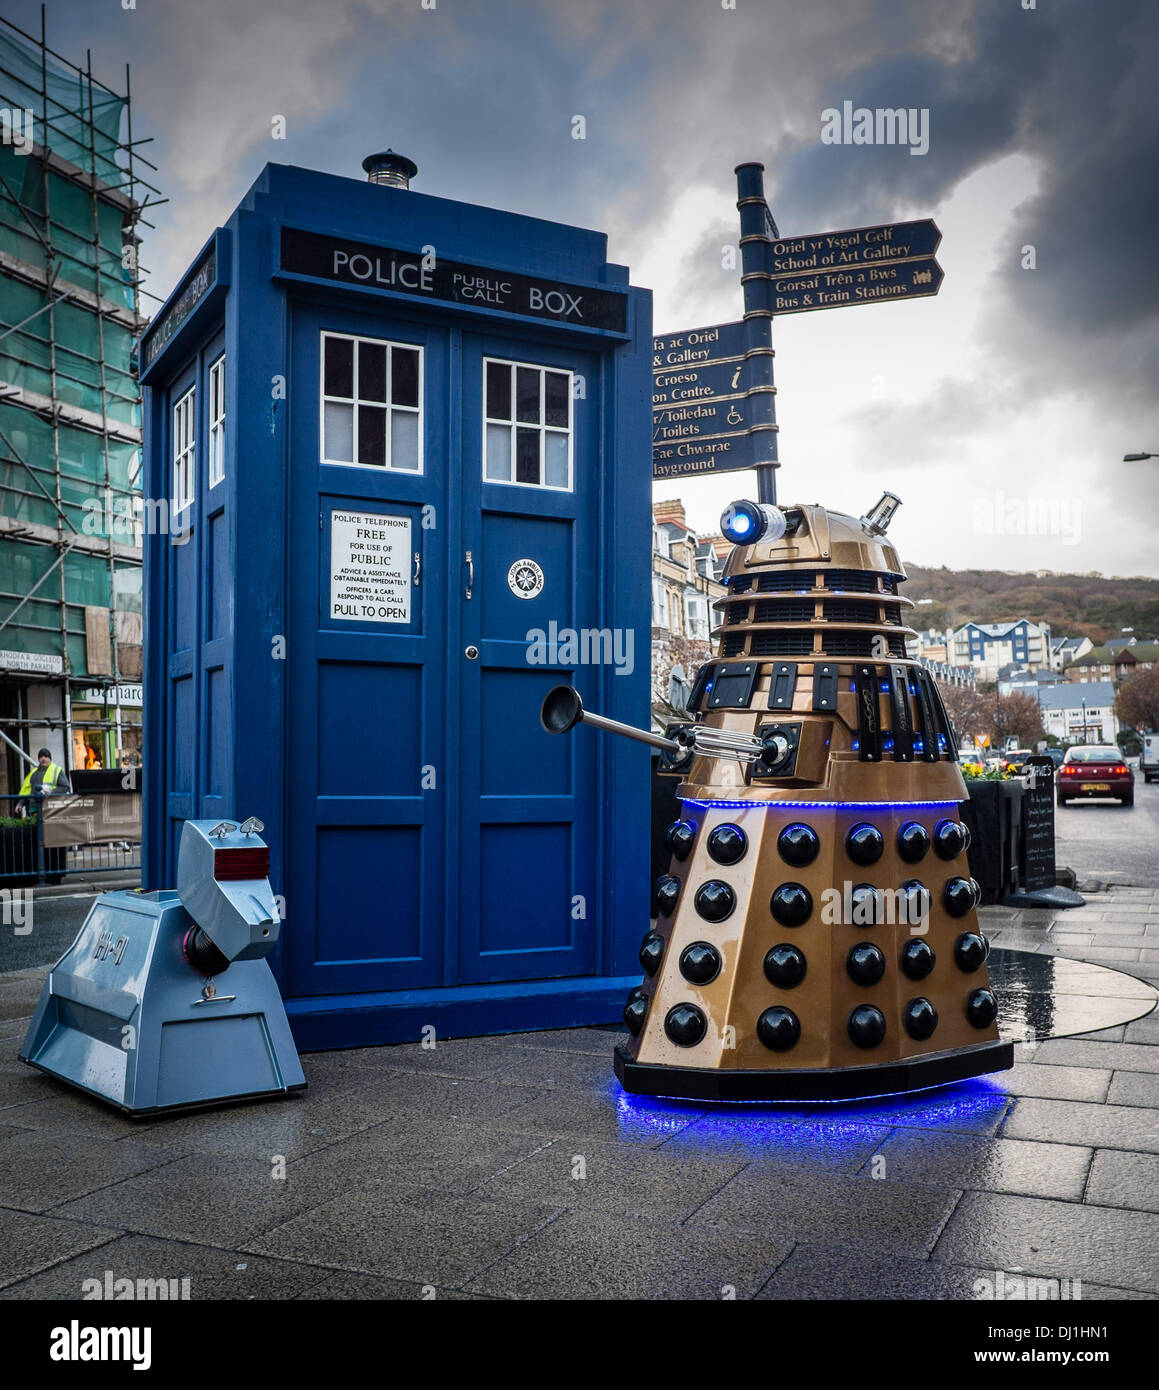 Aberystwyth Wales UK. Tuesday 19 November 2013   As part of the Dr Who 50th anniversary celebrations, the TARDIS is on a surprise tour of welsh towns and cities. Stopping in Aberystwyth the iconic police box was joined by a DALEK and K-9 fellow stars of the long running cult BBC television programme  phot Credit:  keith morris/Alamy Live News - Stock Image